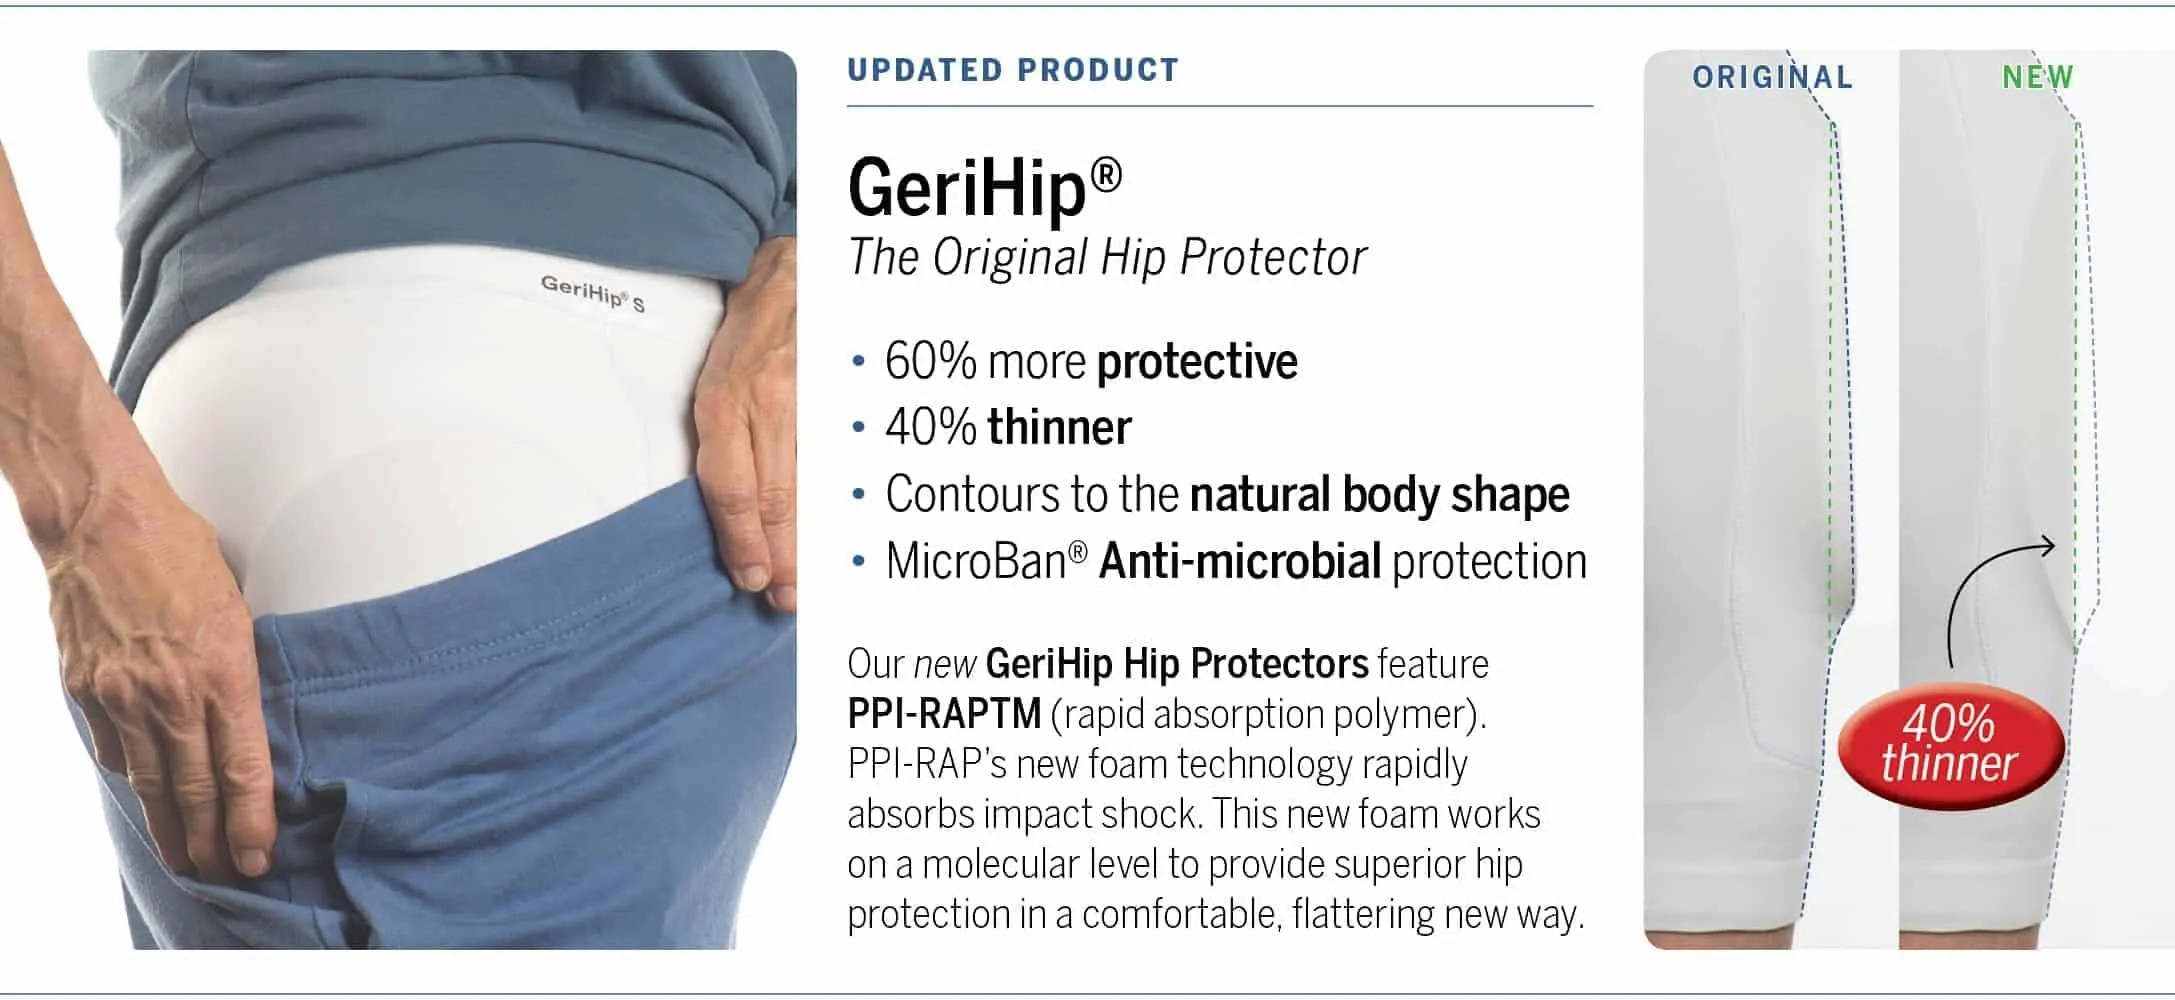 Geri Hip Product Updates